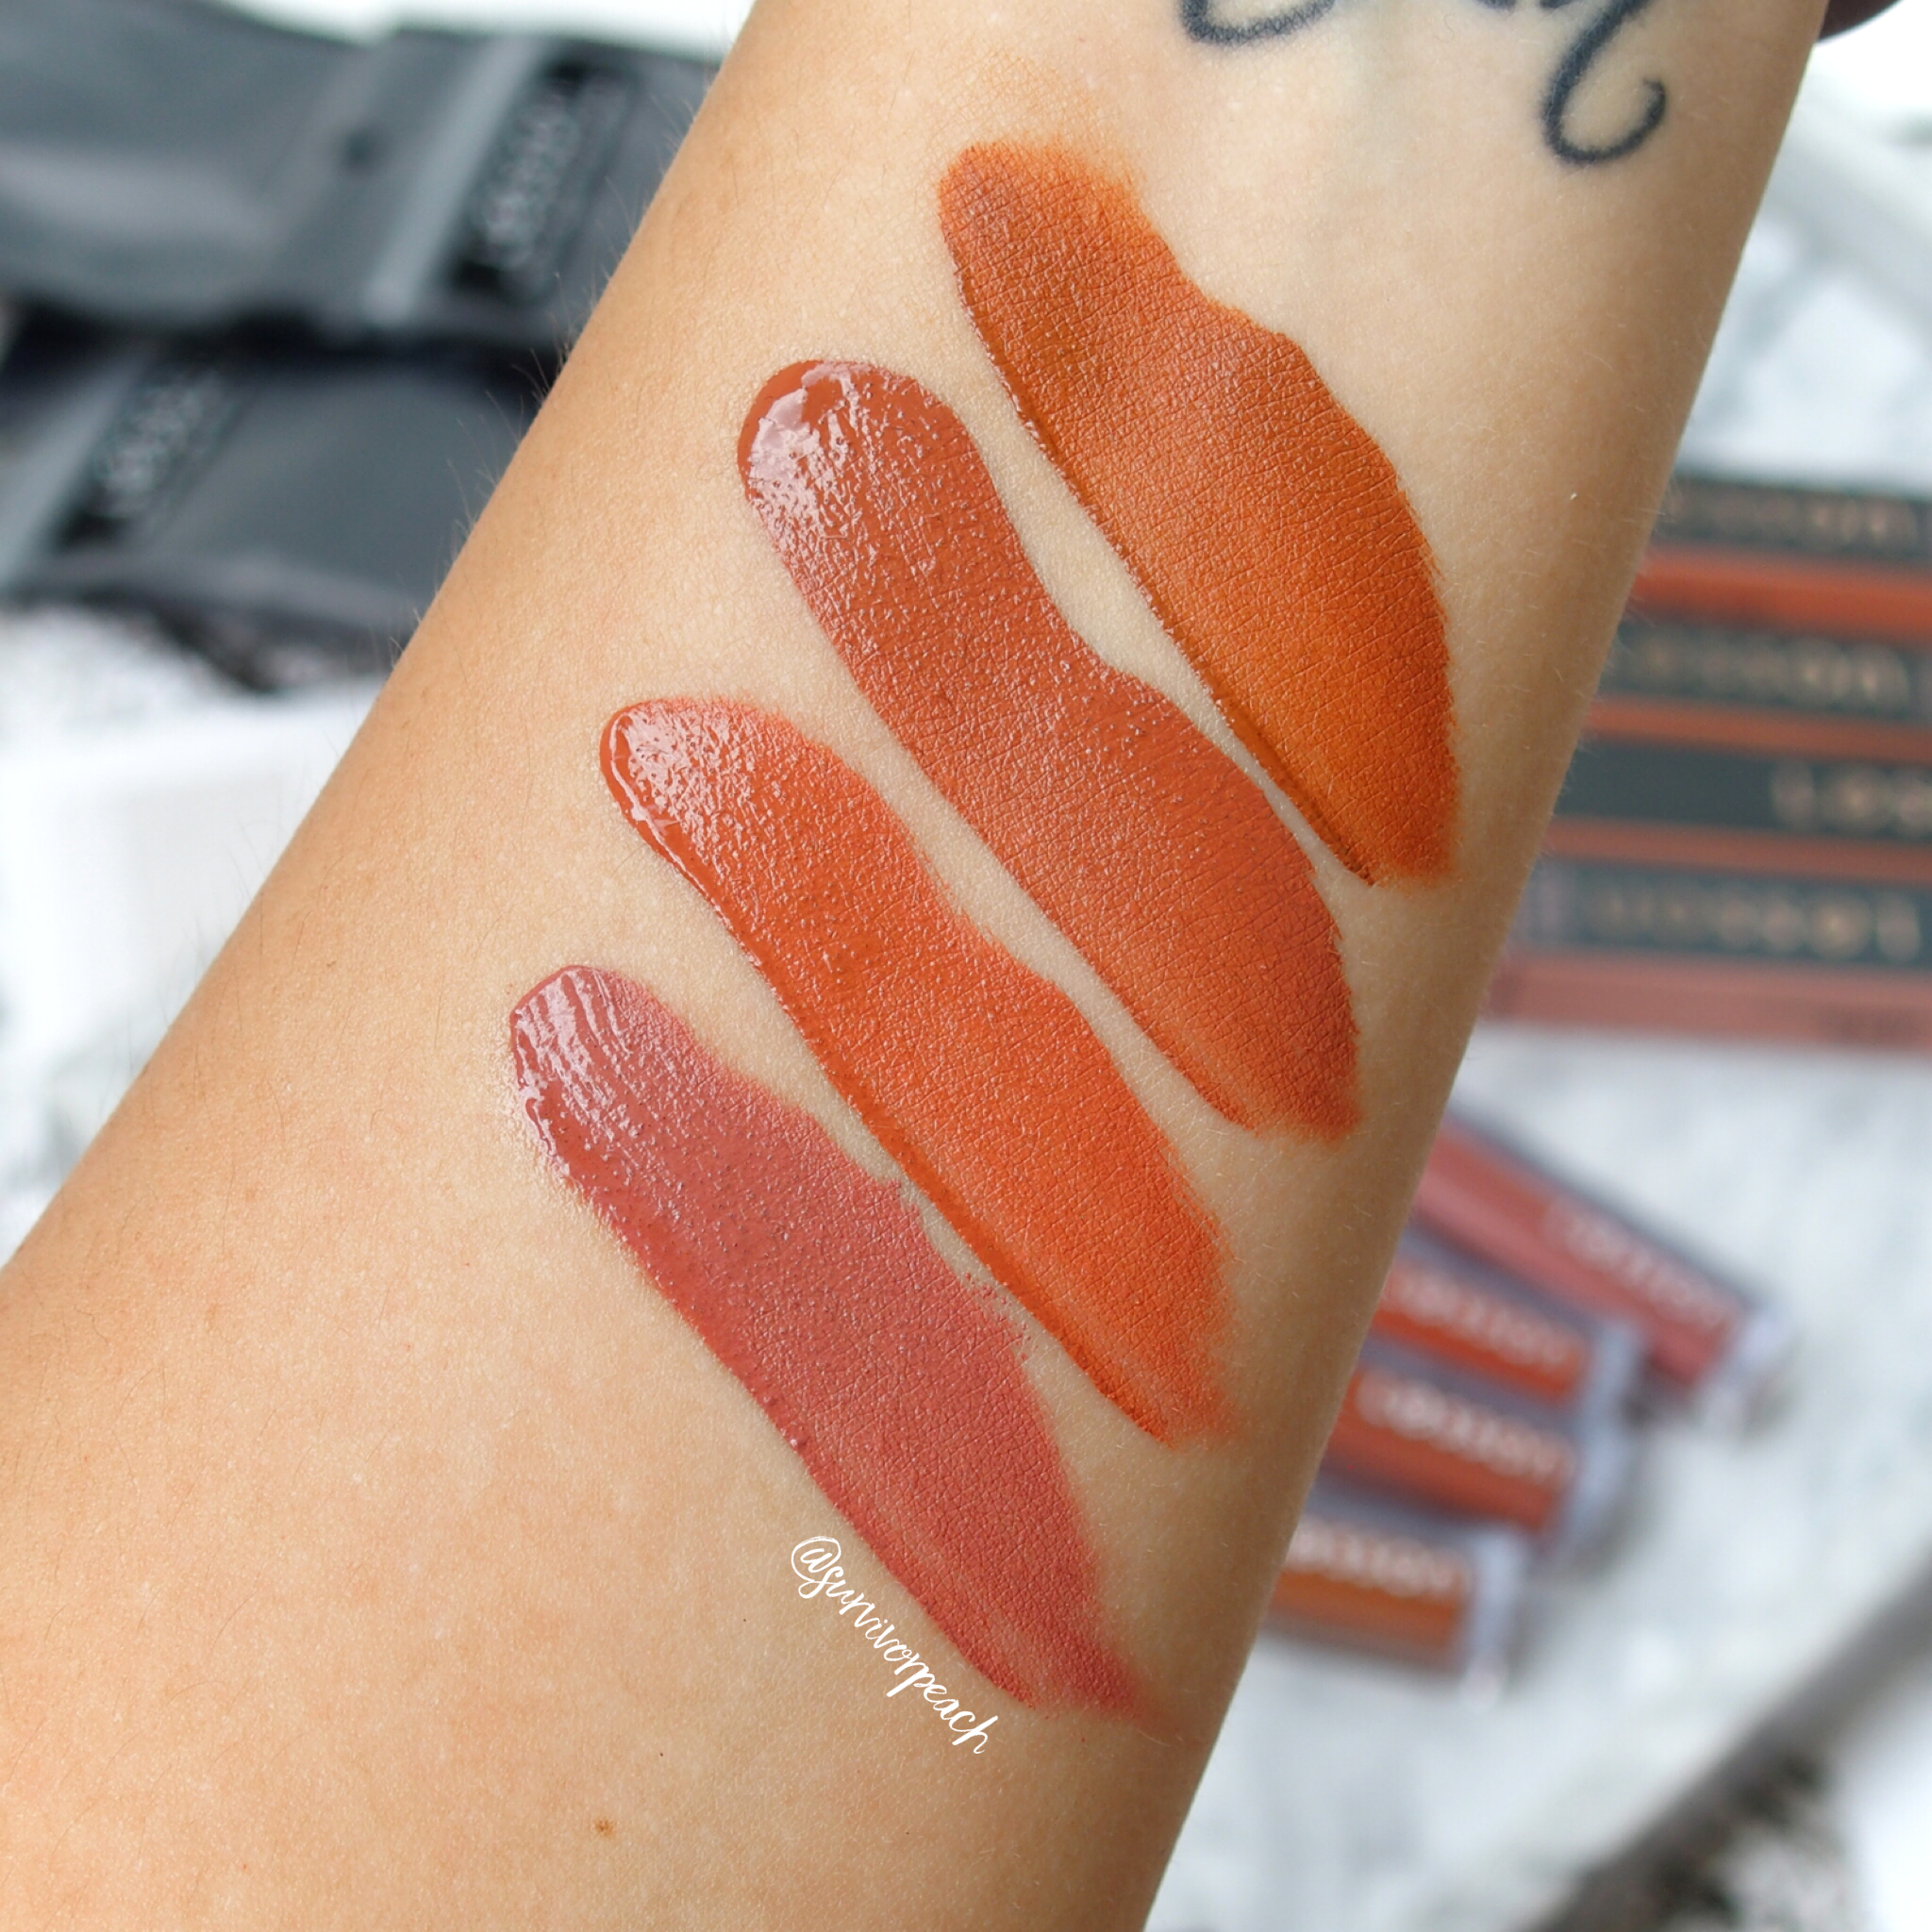 Swatches of the Lesson Thailand Healthy Lip Liquids in shade Be Him, Your Man, My Everyday, and 24/7.